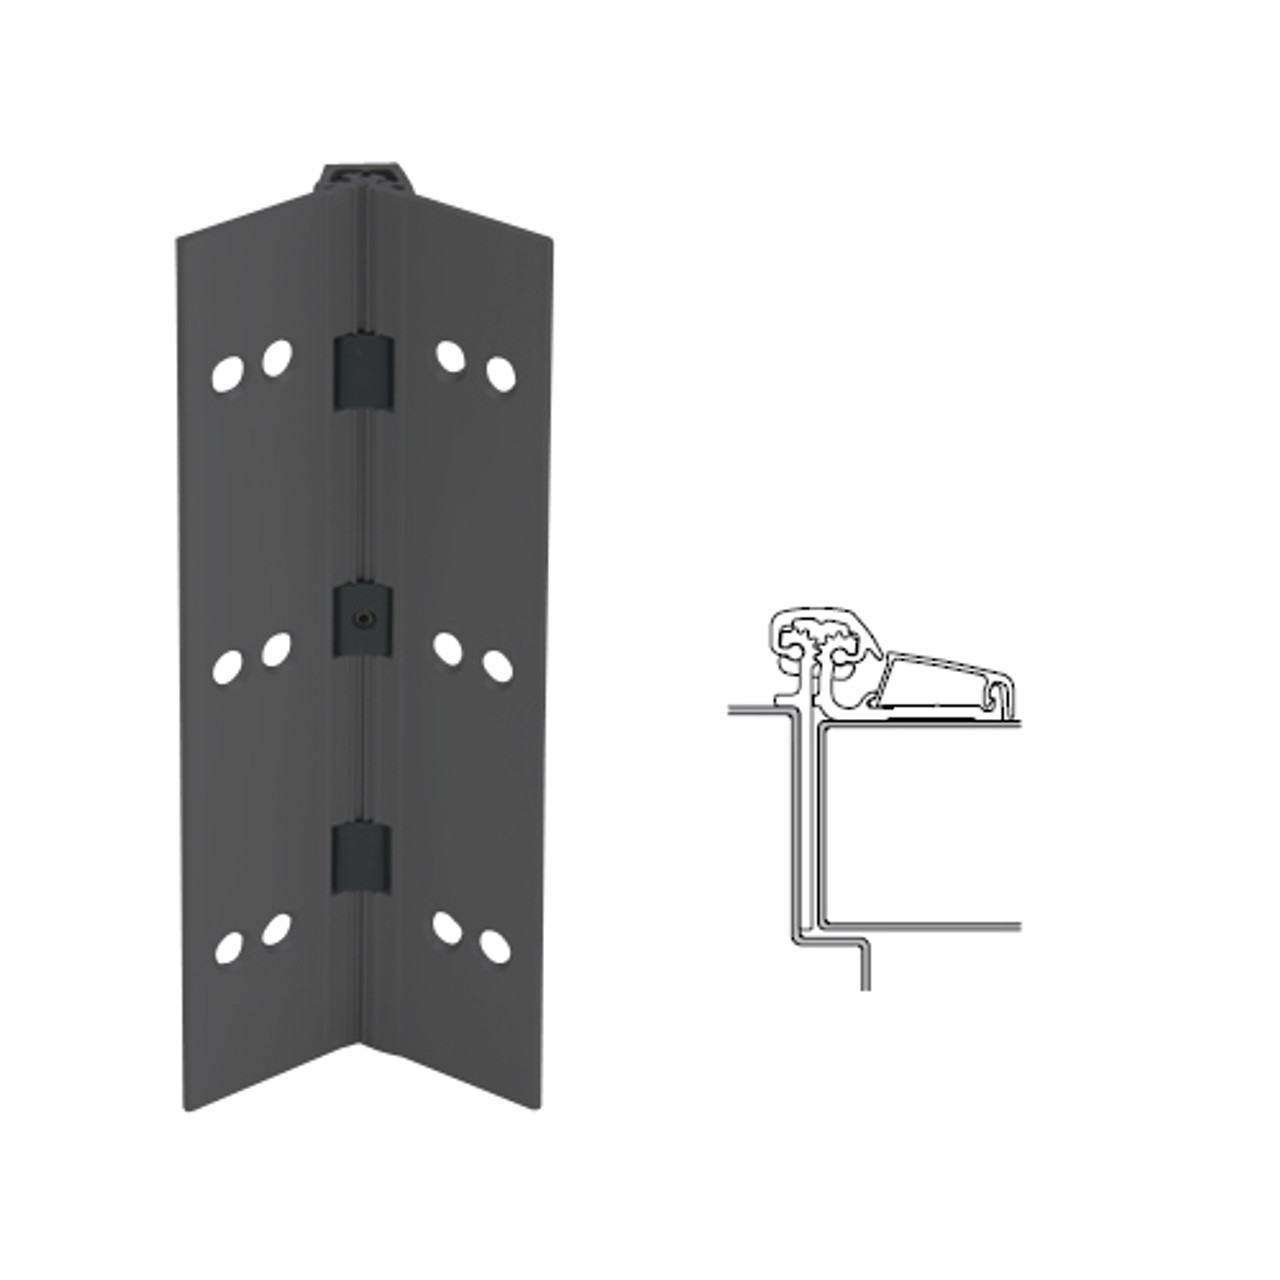 054XY-315AN-85-TFWD IVES Adjustable Half Surface Continuous Geared Hinges with Thread Forming Screws in Anodized Black